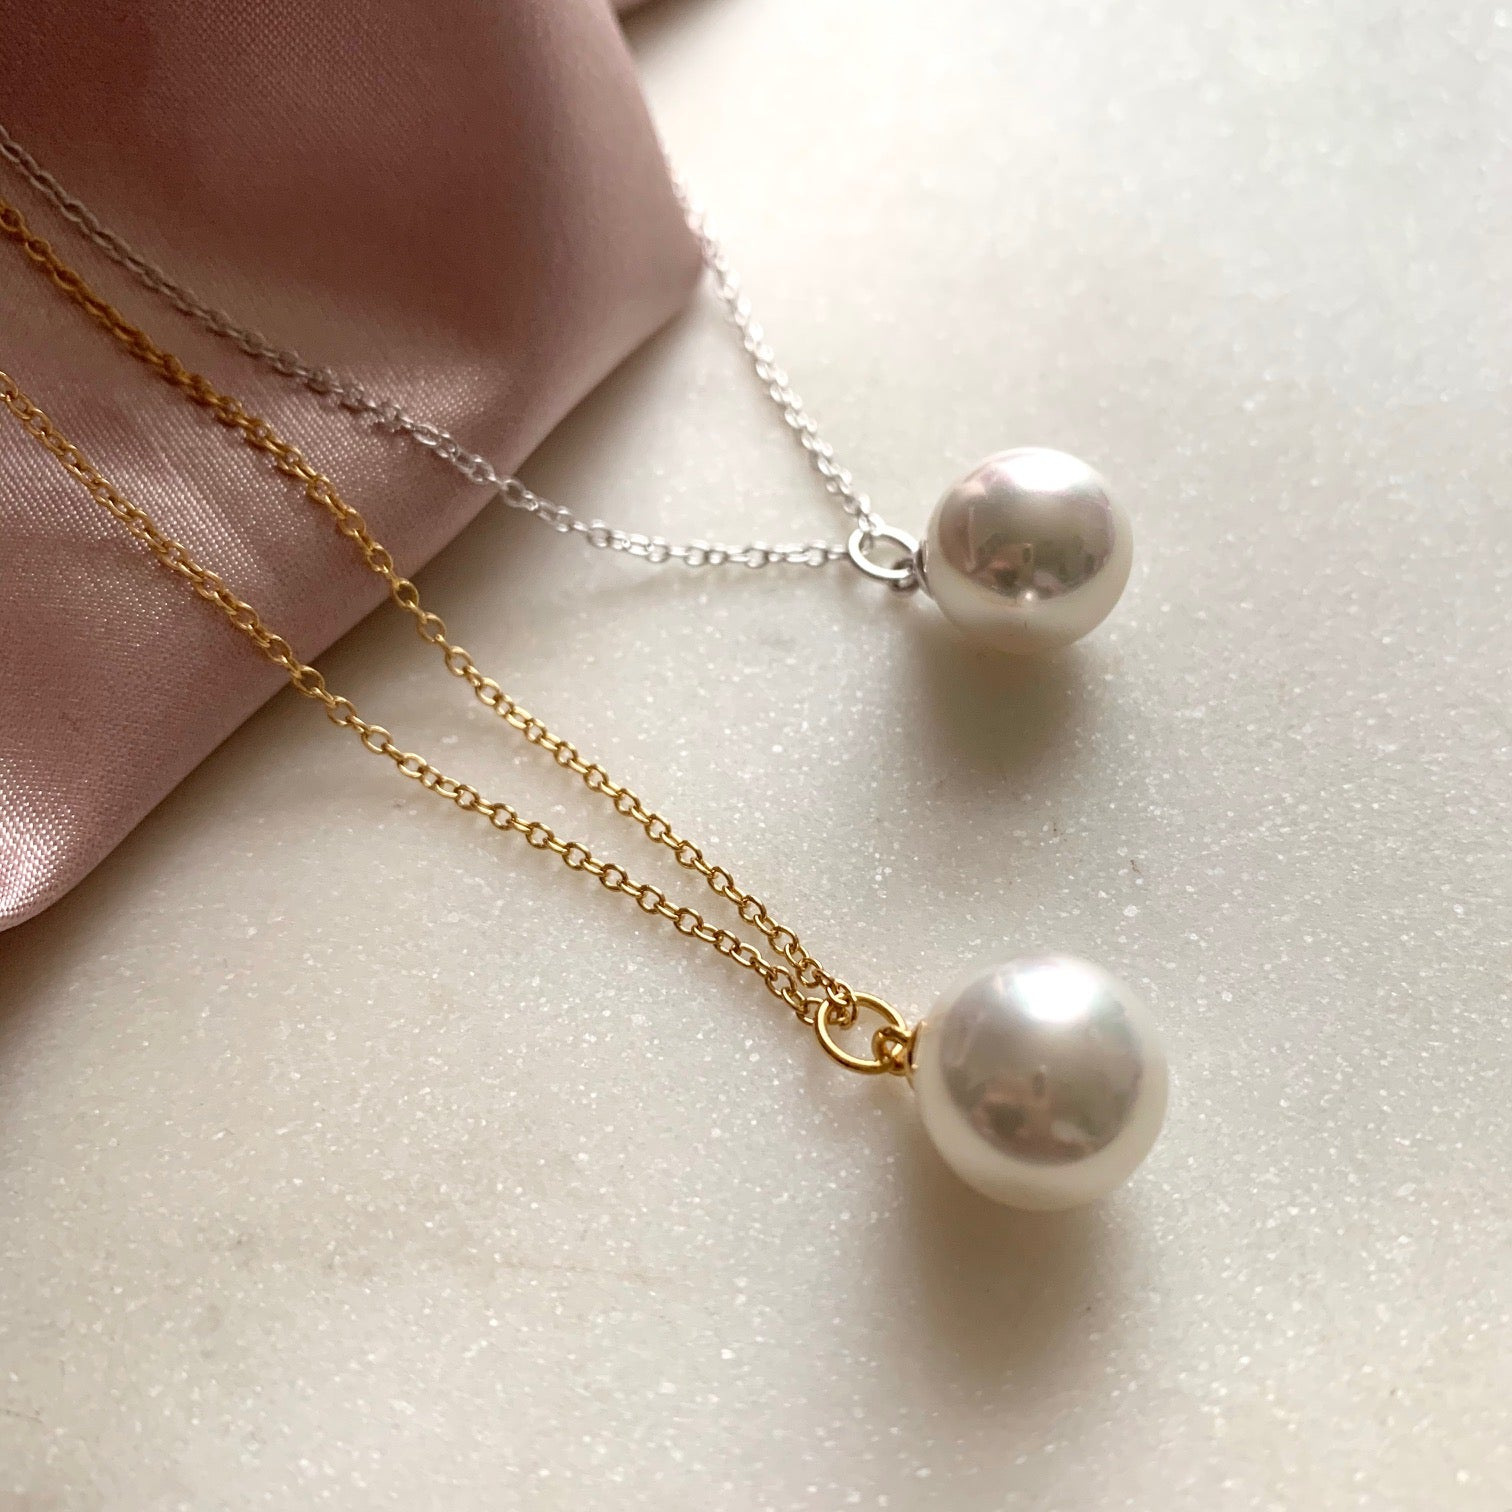 Pearl Necklace by Pearl & Queenie